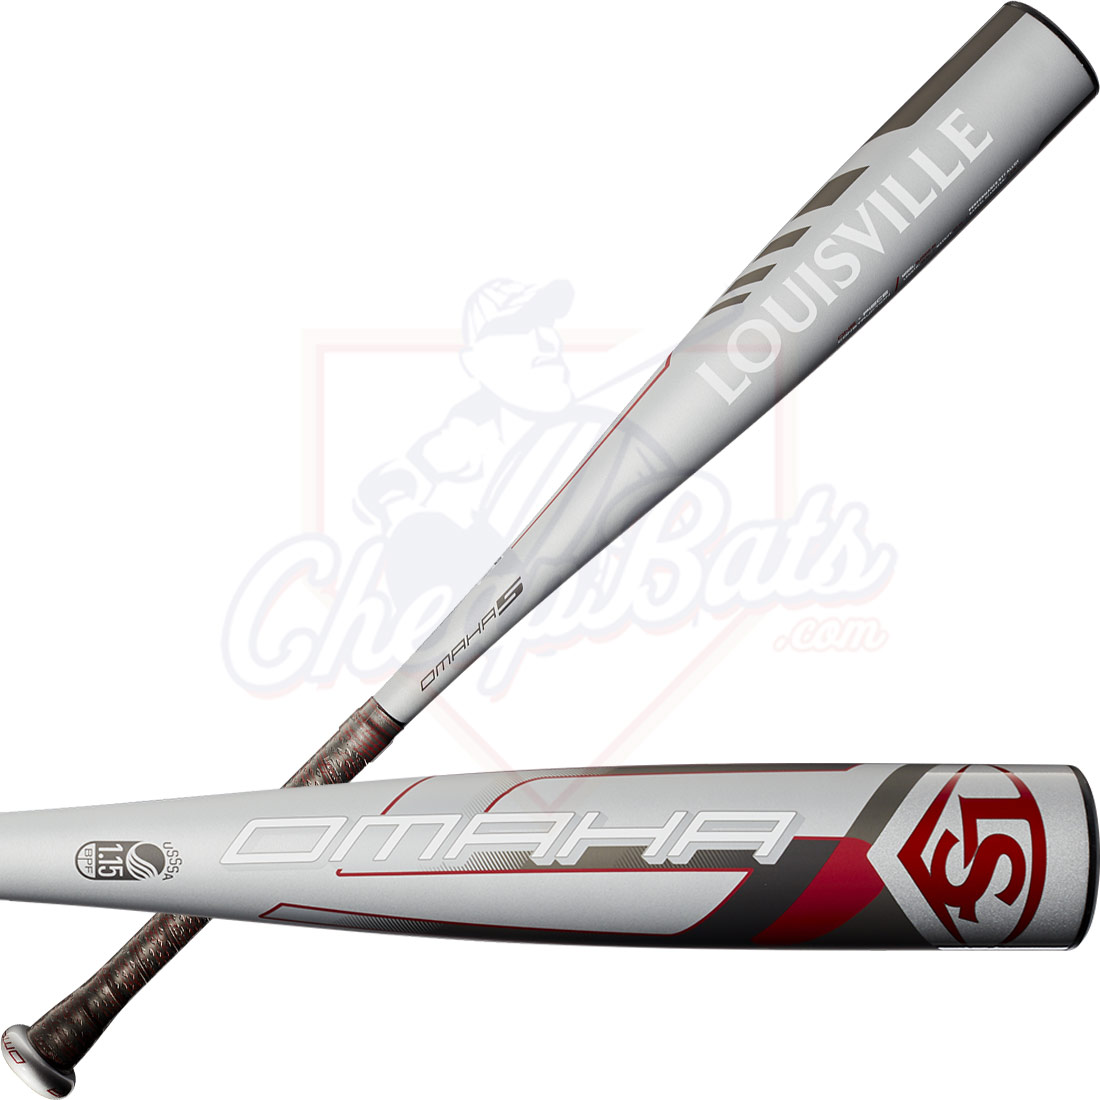 2020 Louisville Slugger Omaha Youth USSSA Baseball Bat -10oz WTLSLO5X1020